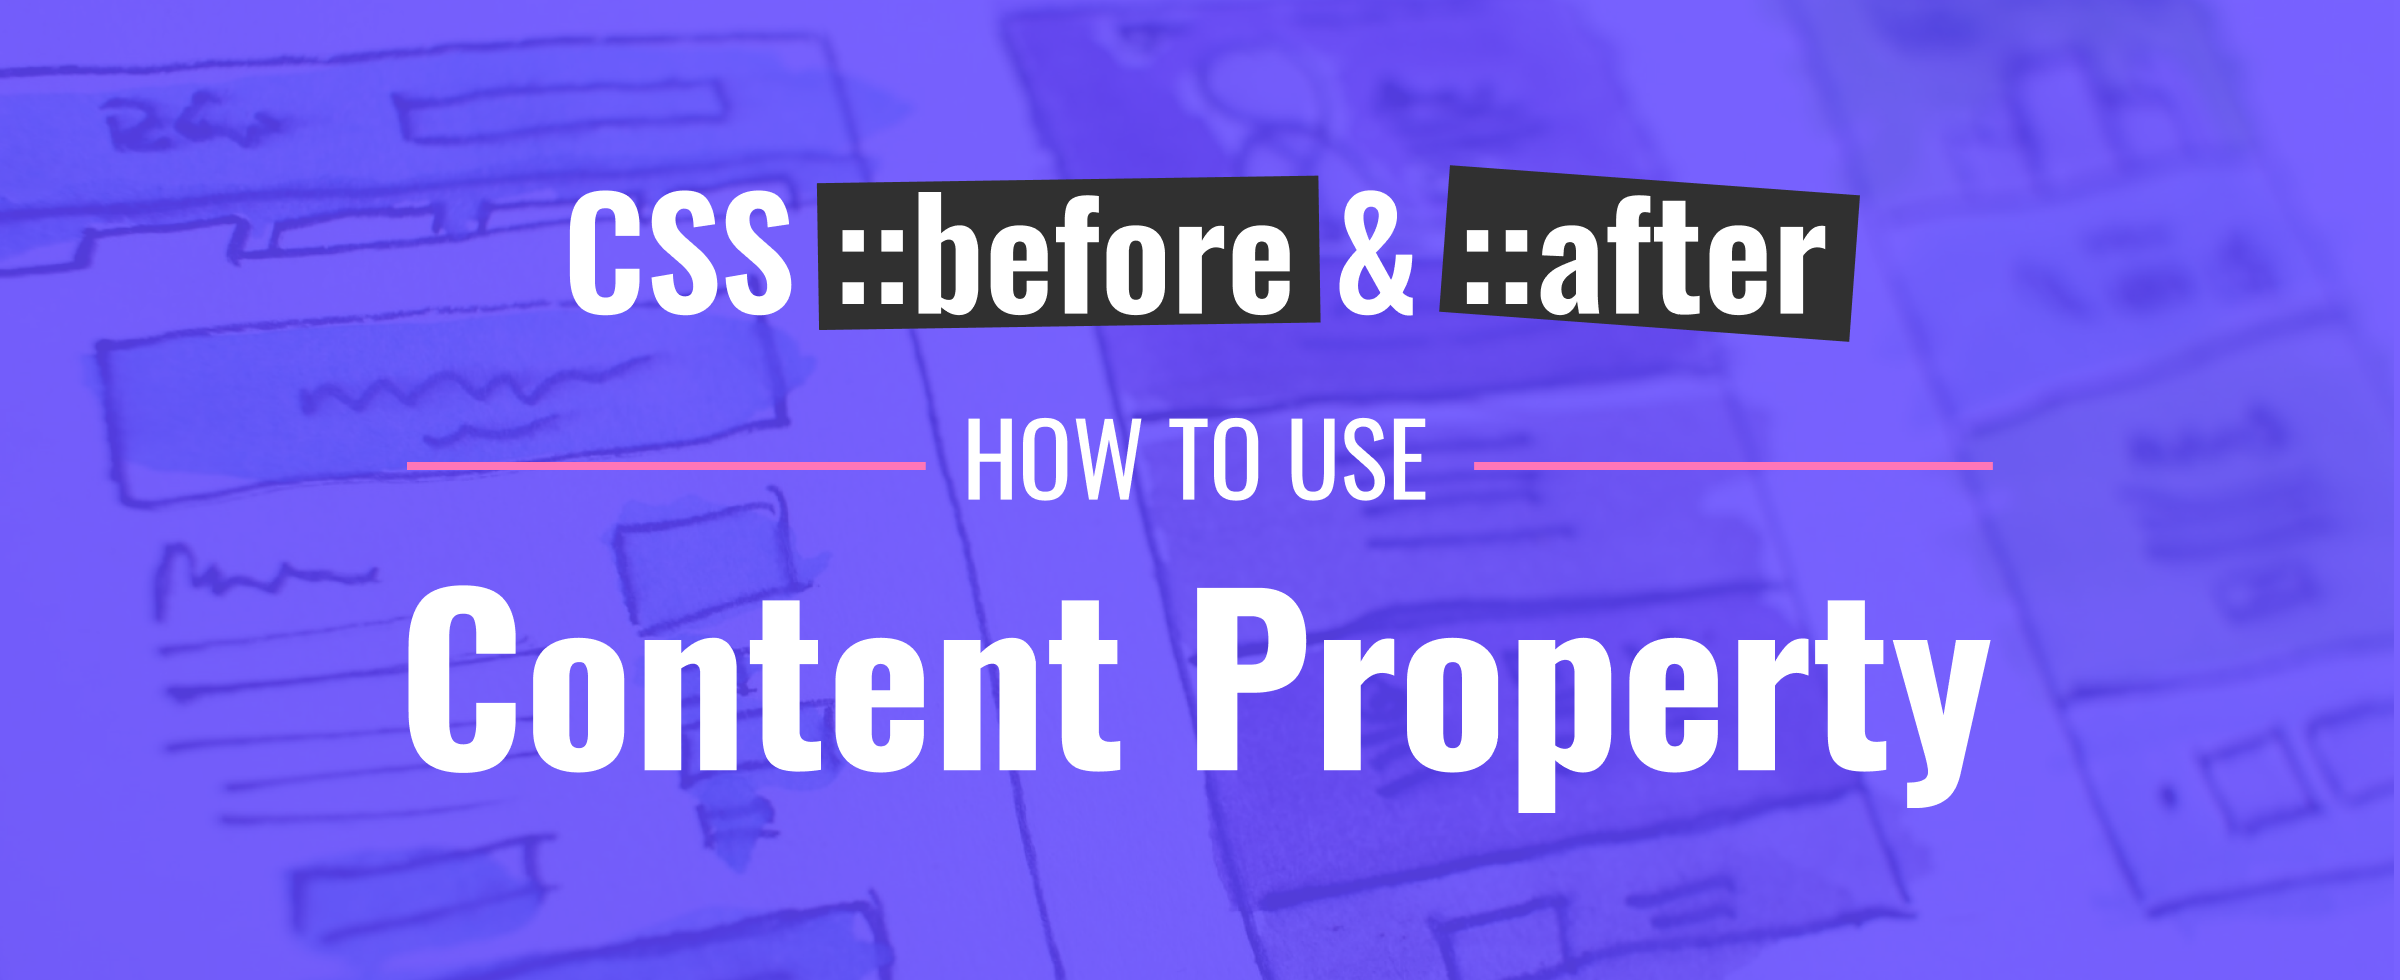 CSS Before and CSS After – How to Use the Content Property